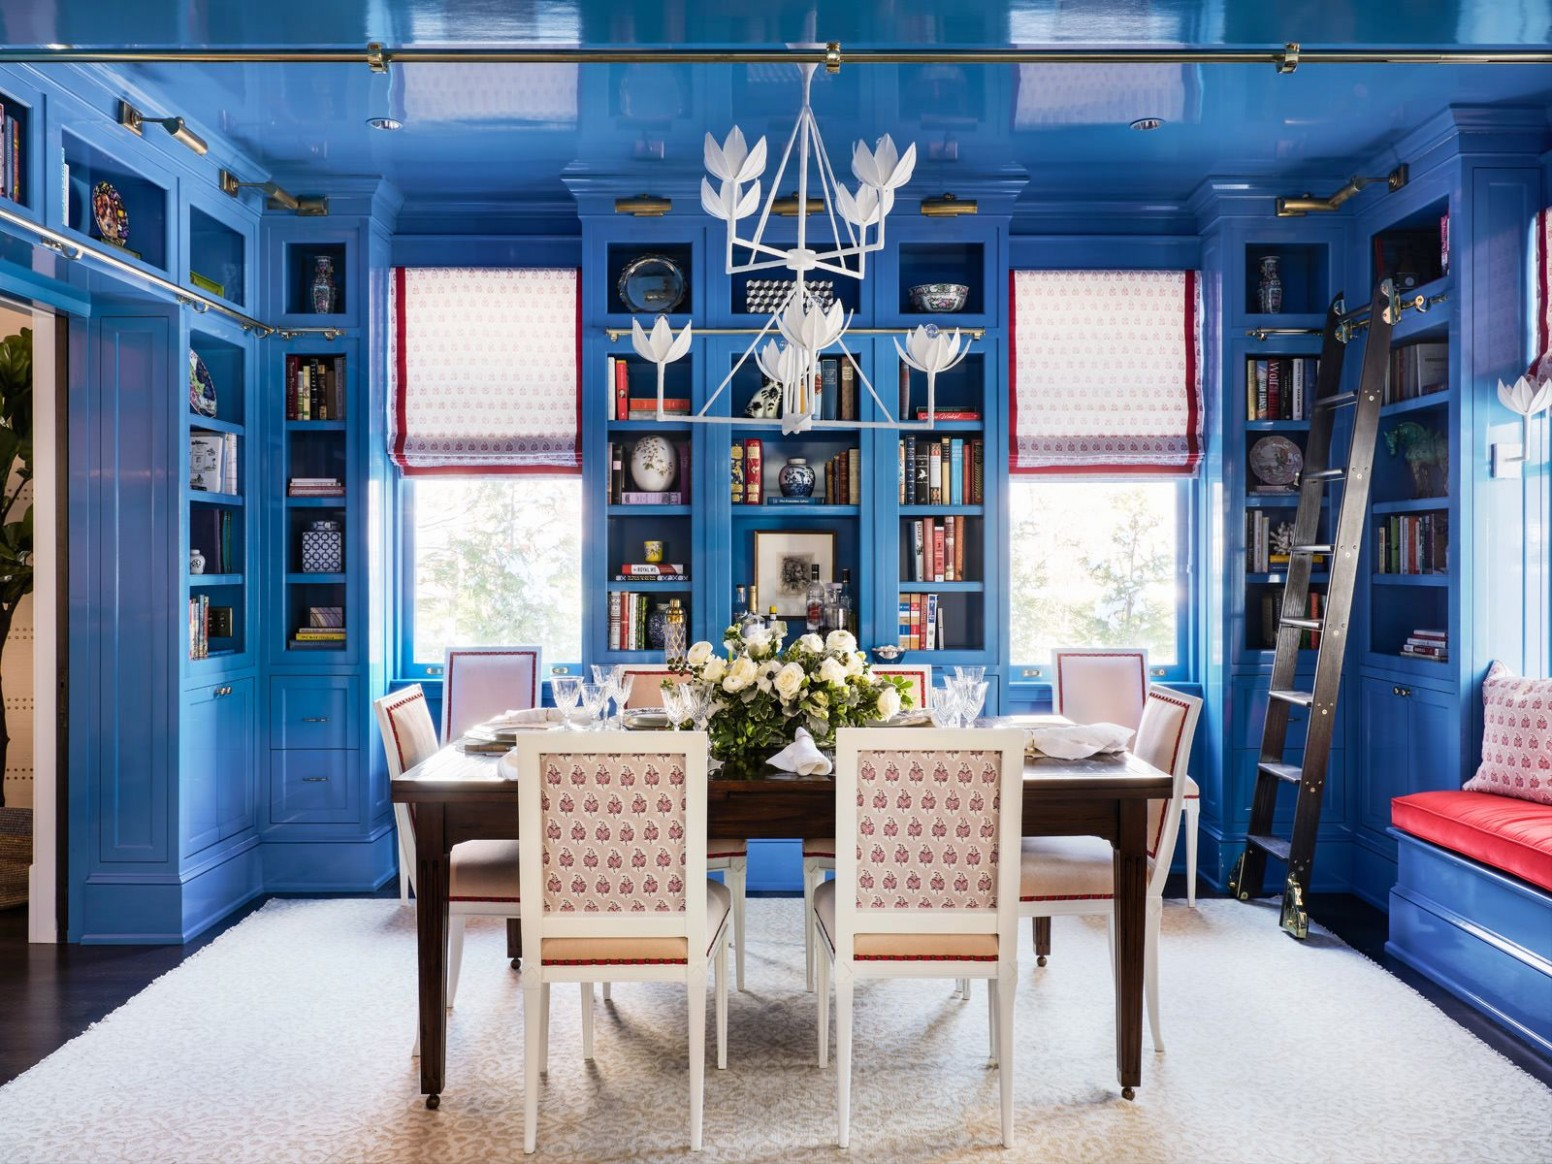 11 Best Dining Room Decorating Ideas, Furniture, Designs, and Pictures - Very Dining Room Ideas